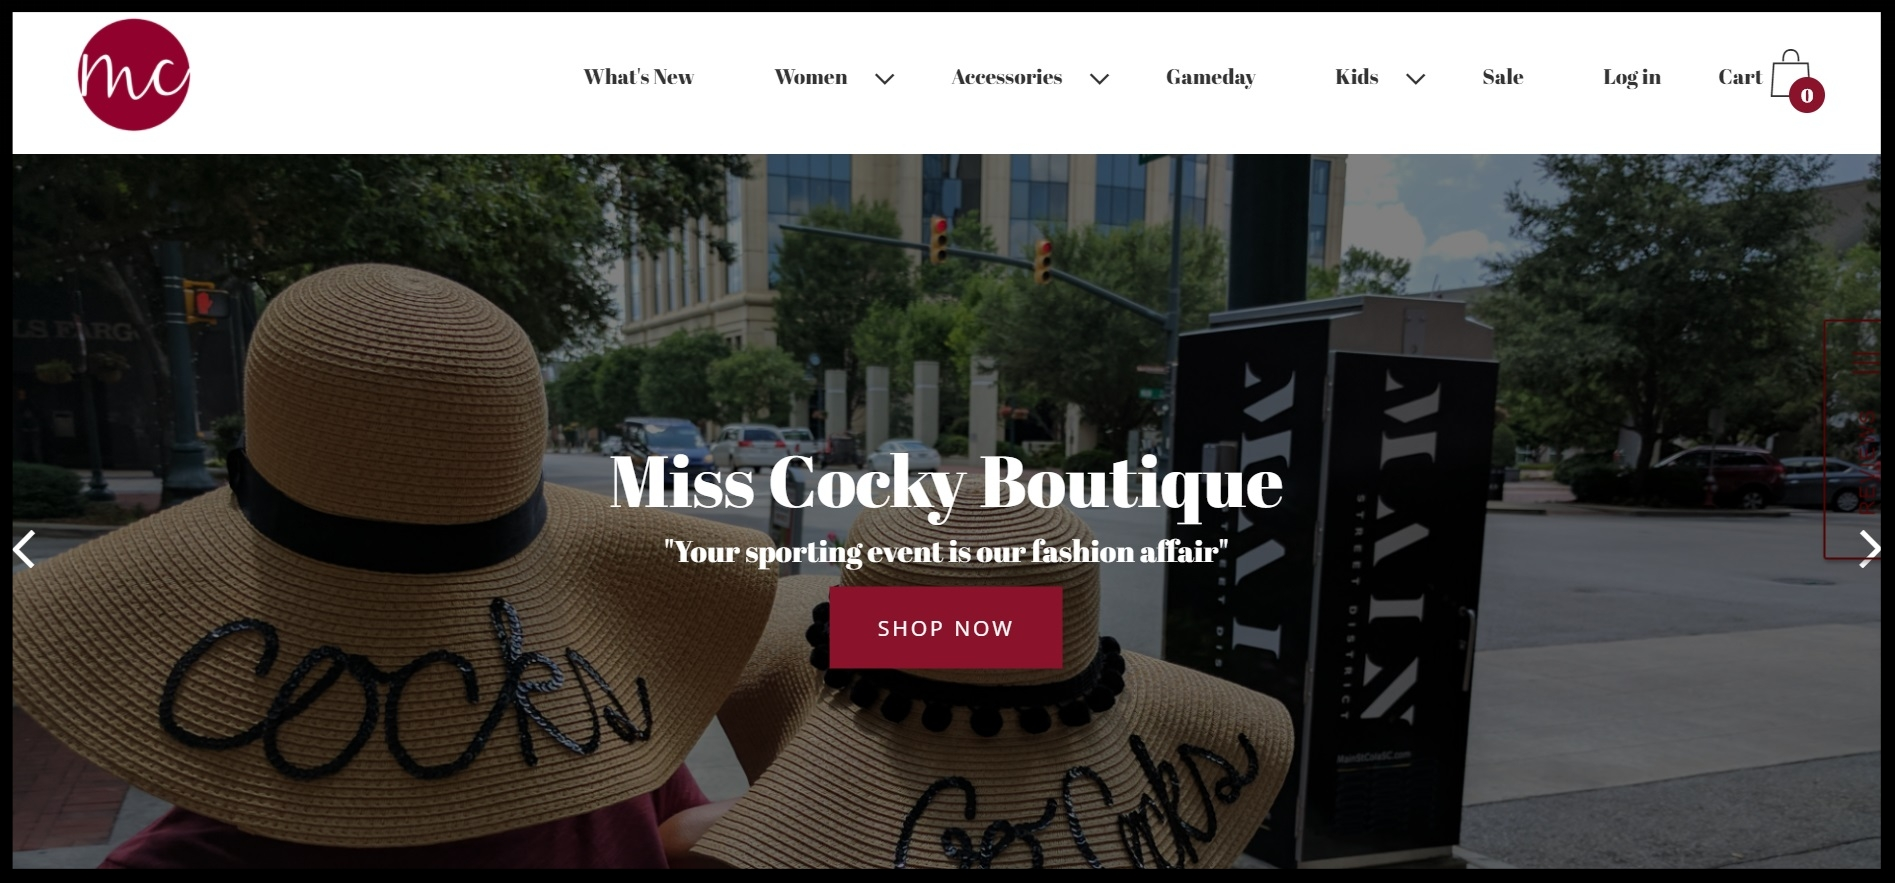 Miss Cocky Boutique - The Original Gameday Boutique!